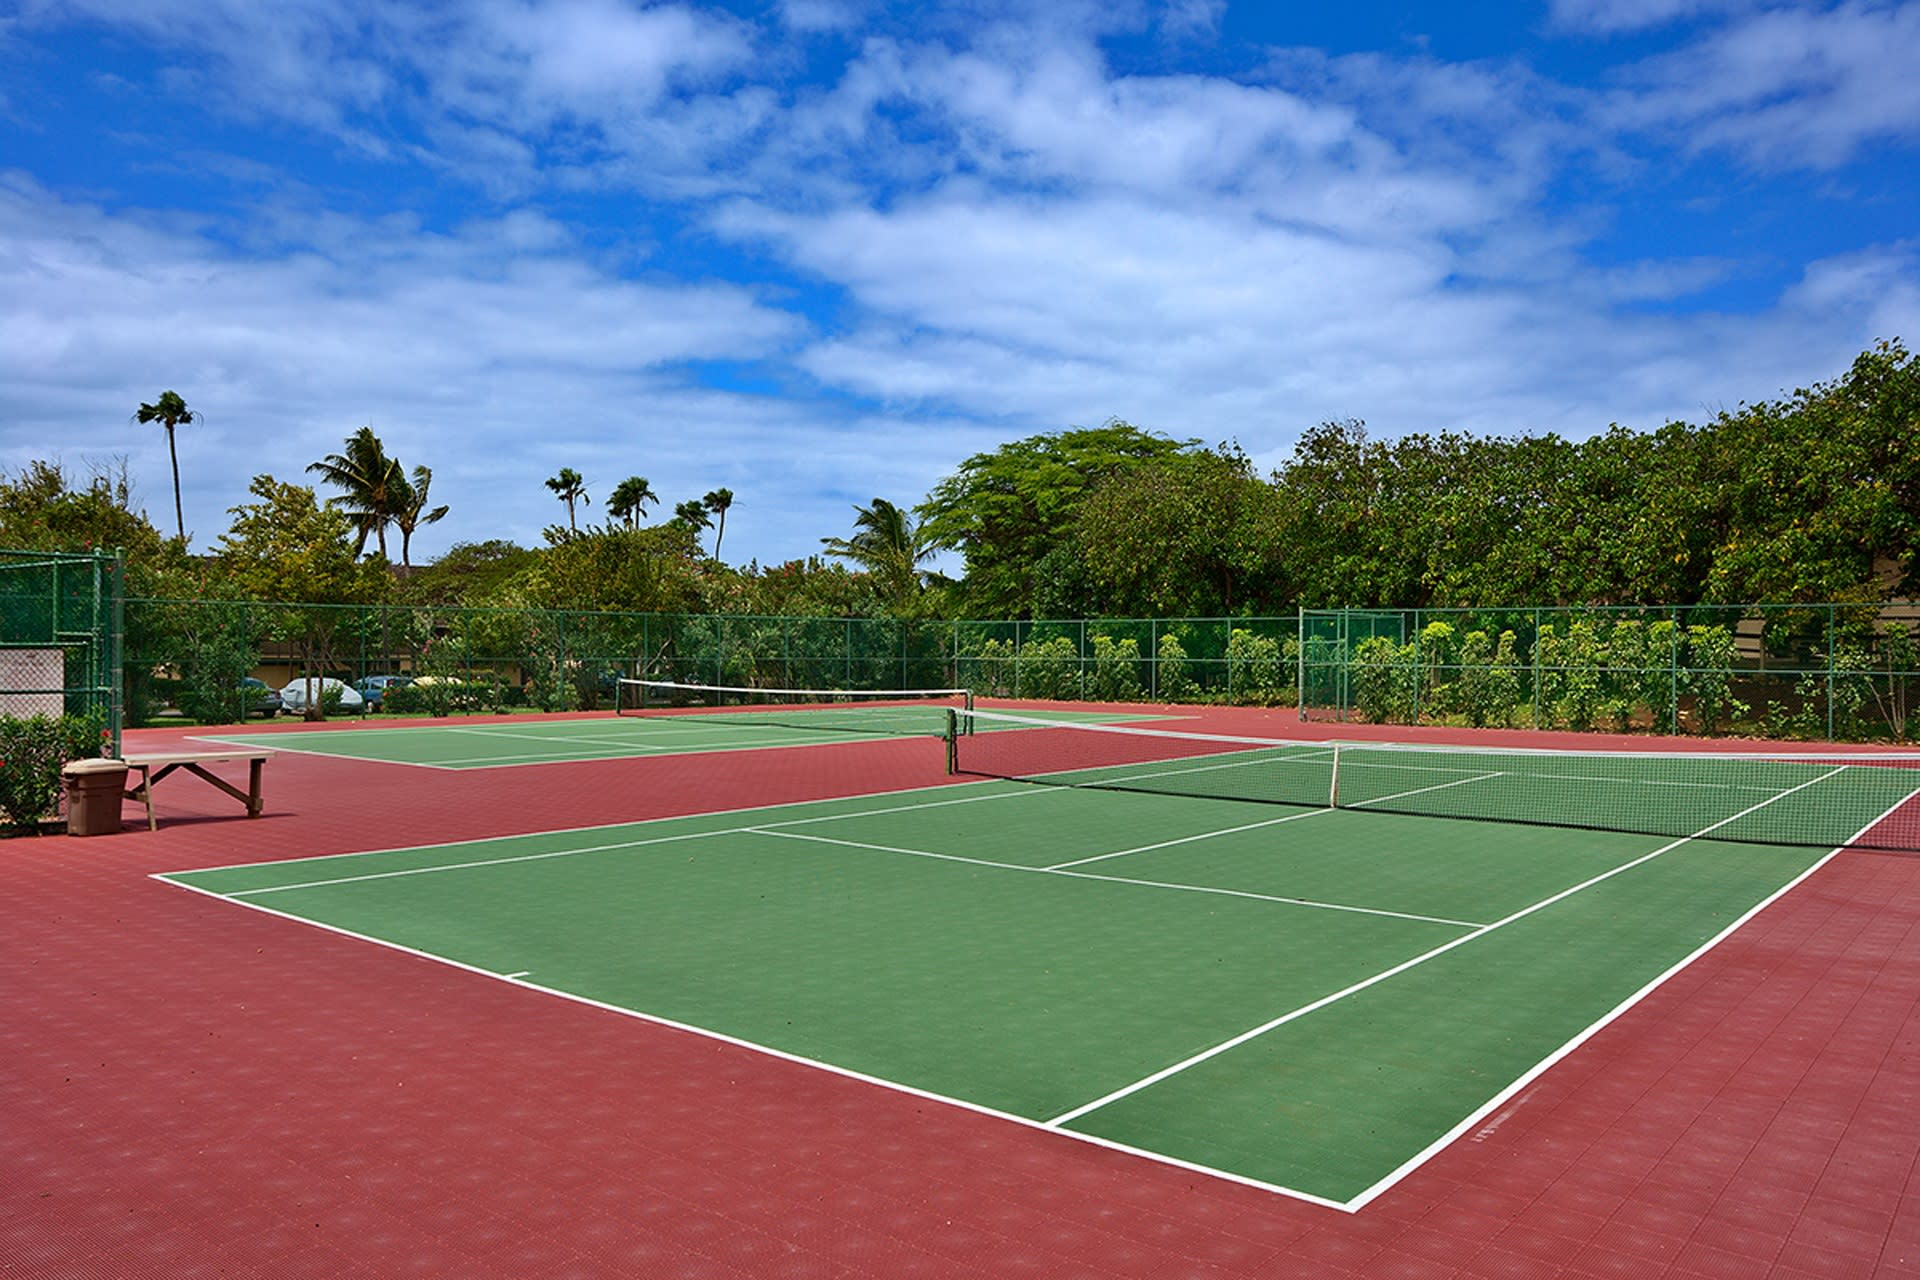 Stay in shape with a friendly game of tennis.